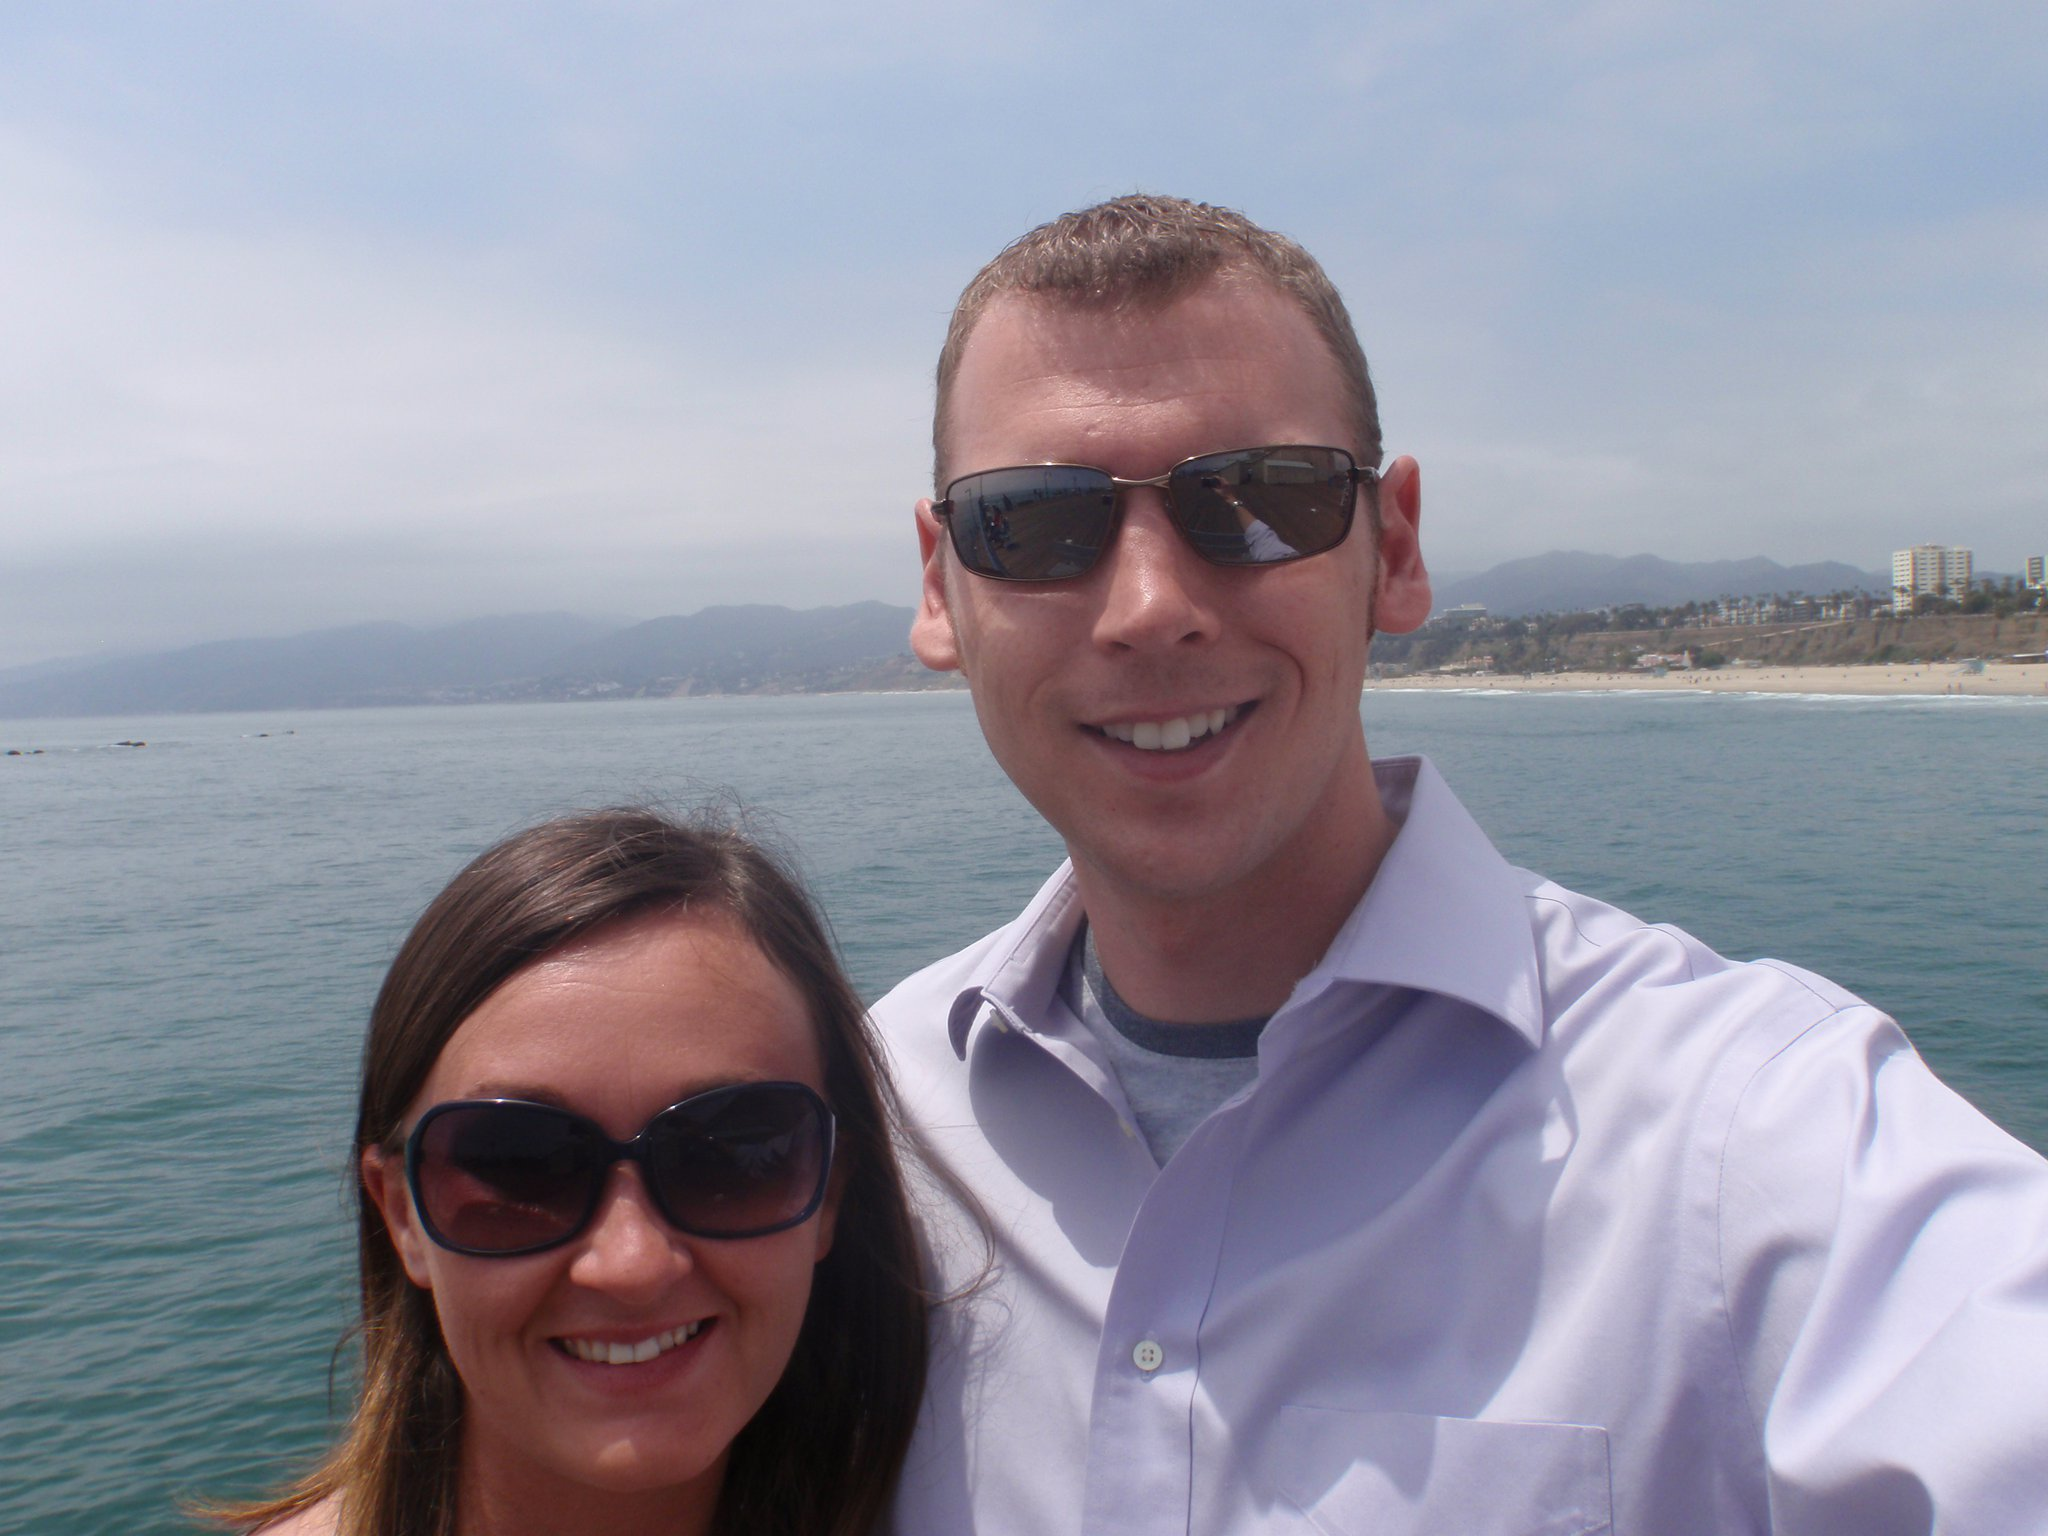 Brightergy Account Controller Tyler Staebell with his fiancee.